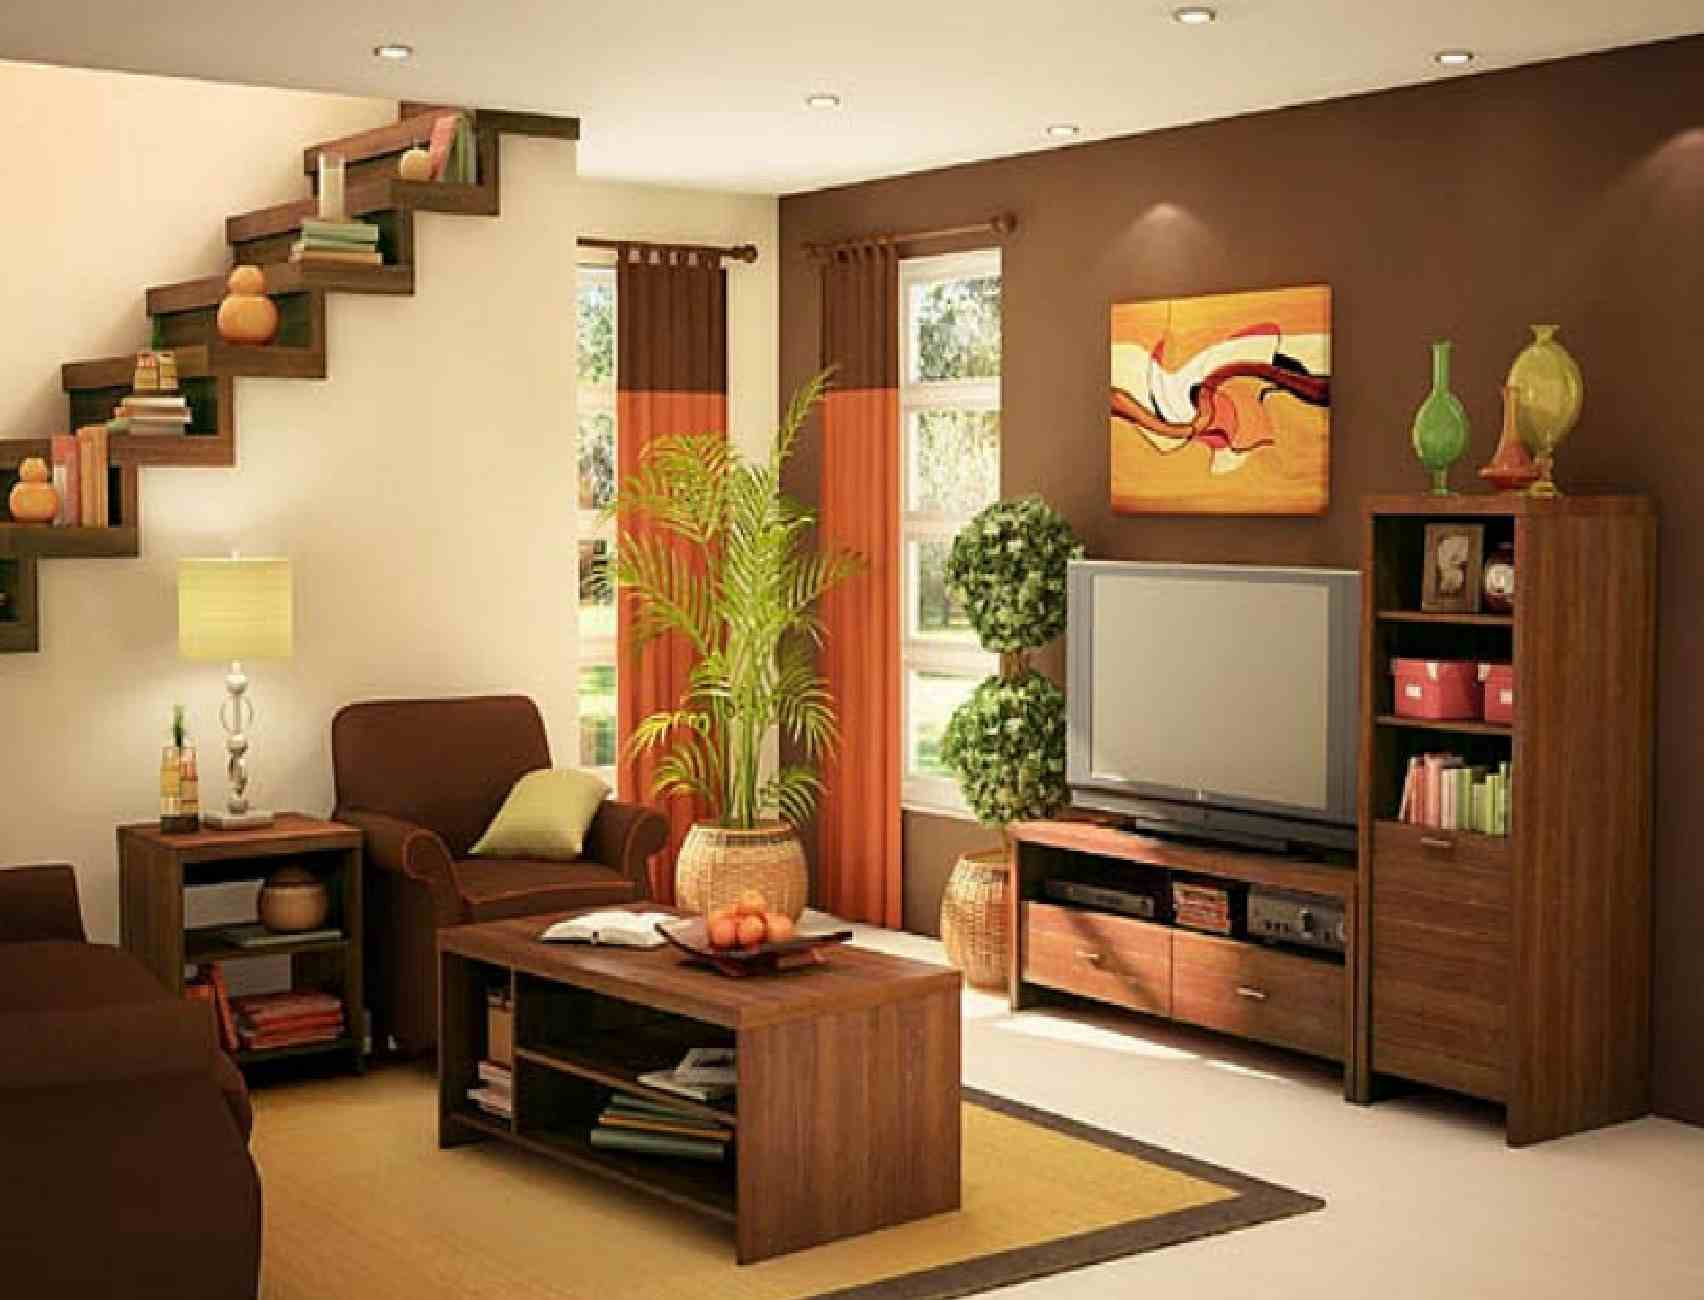 Amazing Decorations Simple Living Room Decor Ideas Also Cheap Dining For Home  Decorating simple home decoration ideas